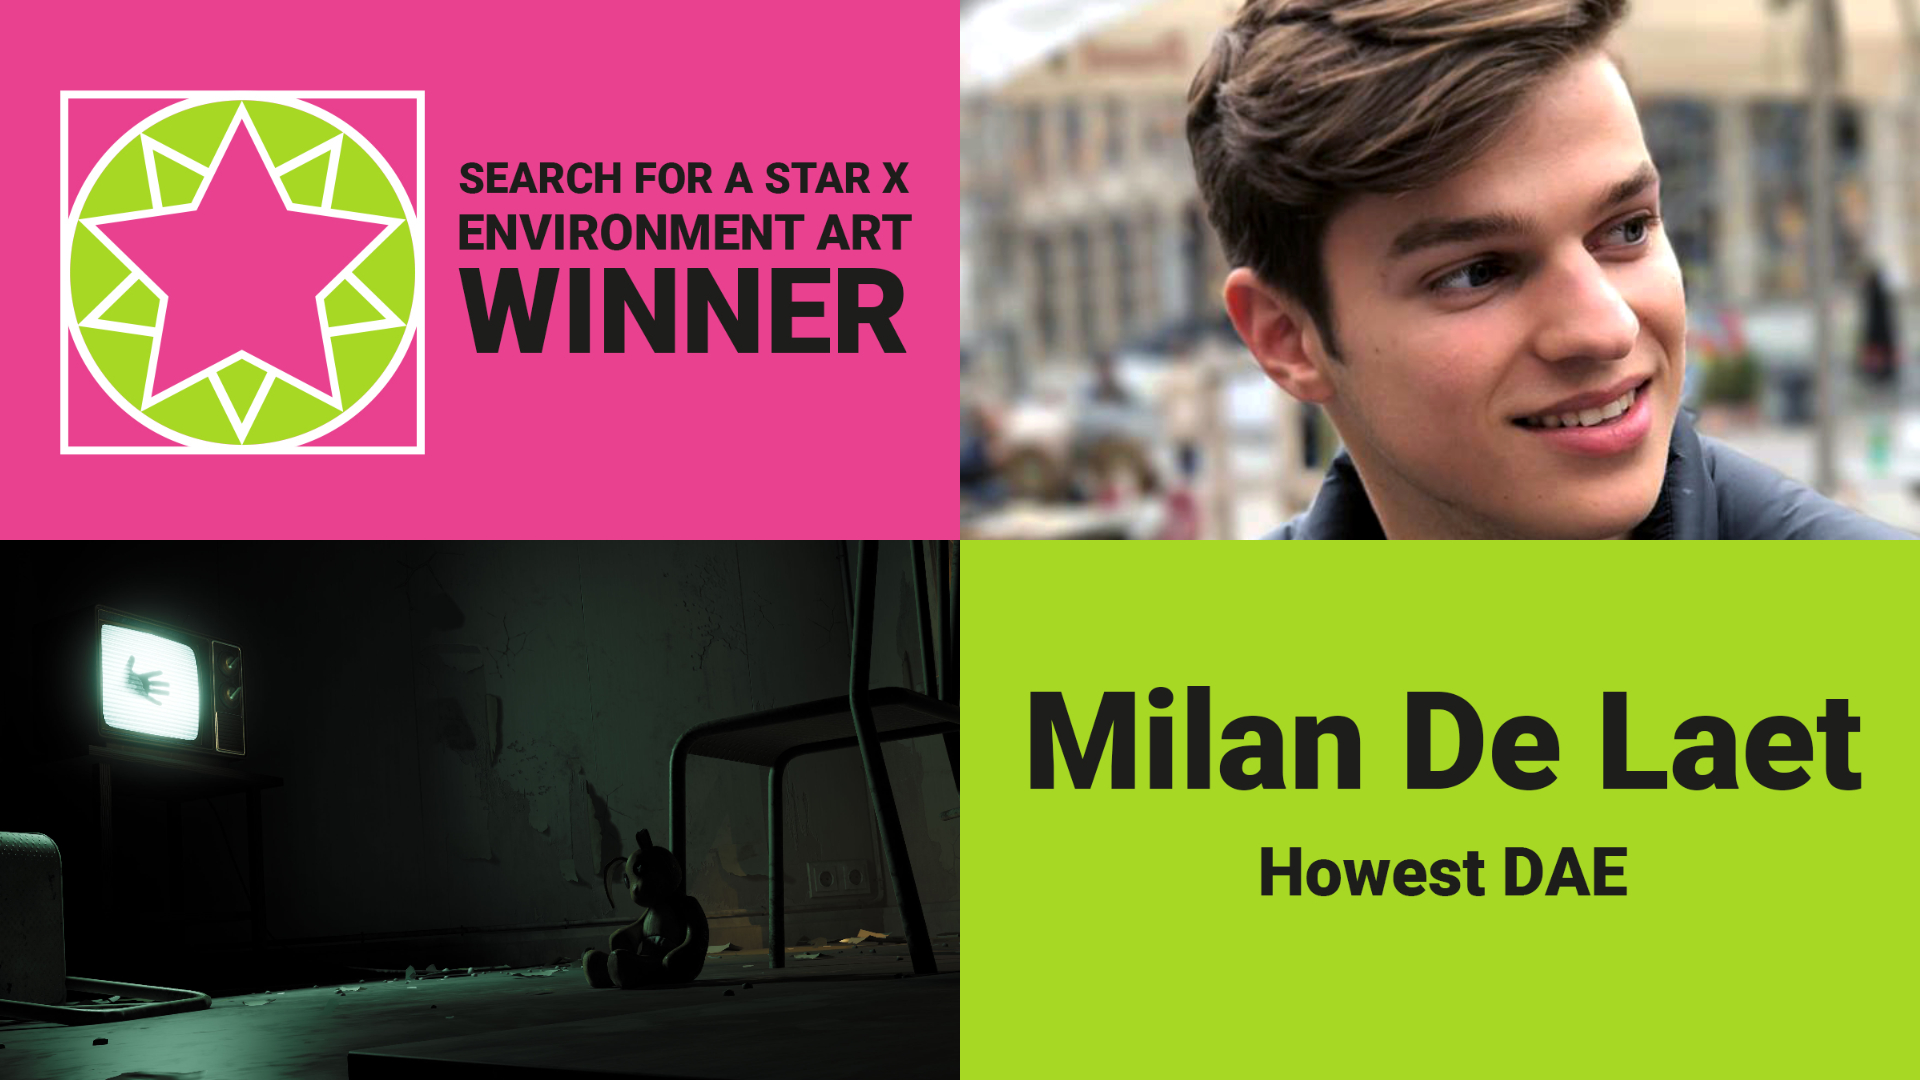 Milan De Laet- SFASX Winner Games Environment Art